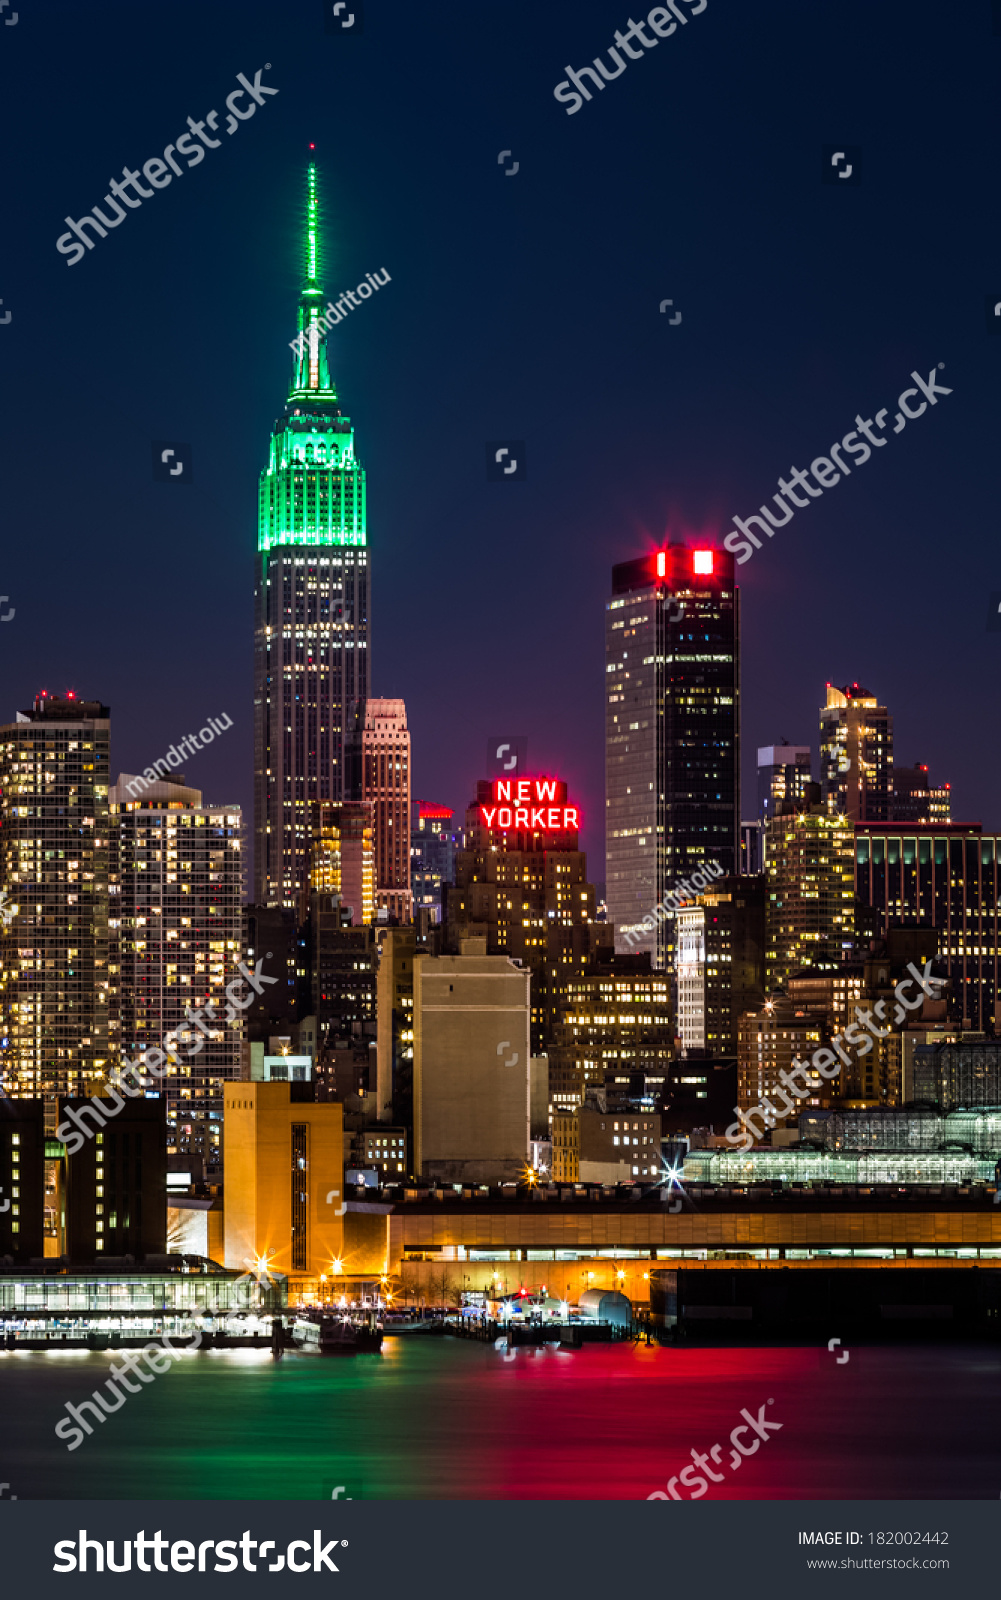 Weehawken (NJ) United States  city photos gallery : WEEHAWKEN, NJ, UNITED STATES MARCH 16, 2014: Empire State Building ...